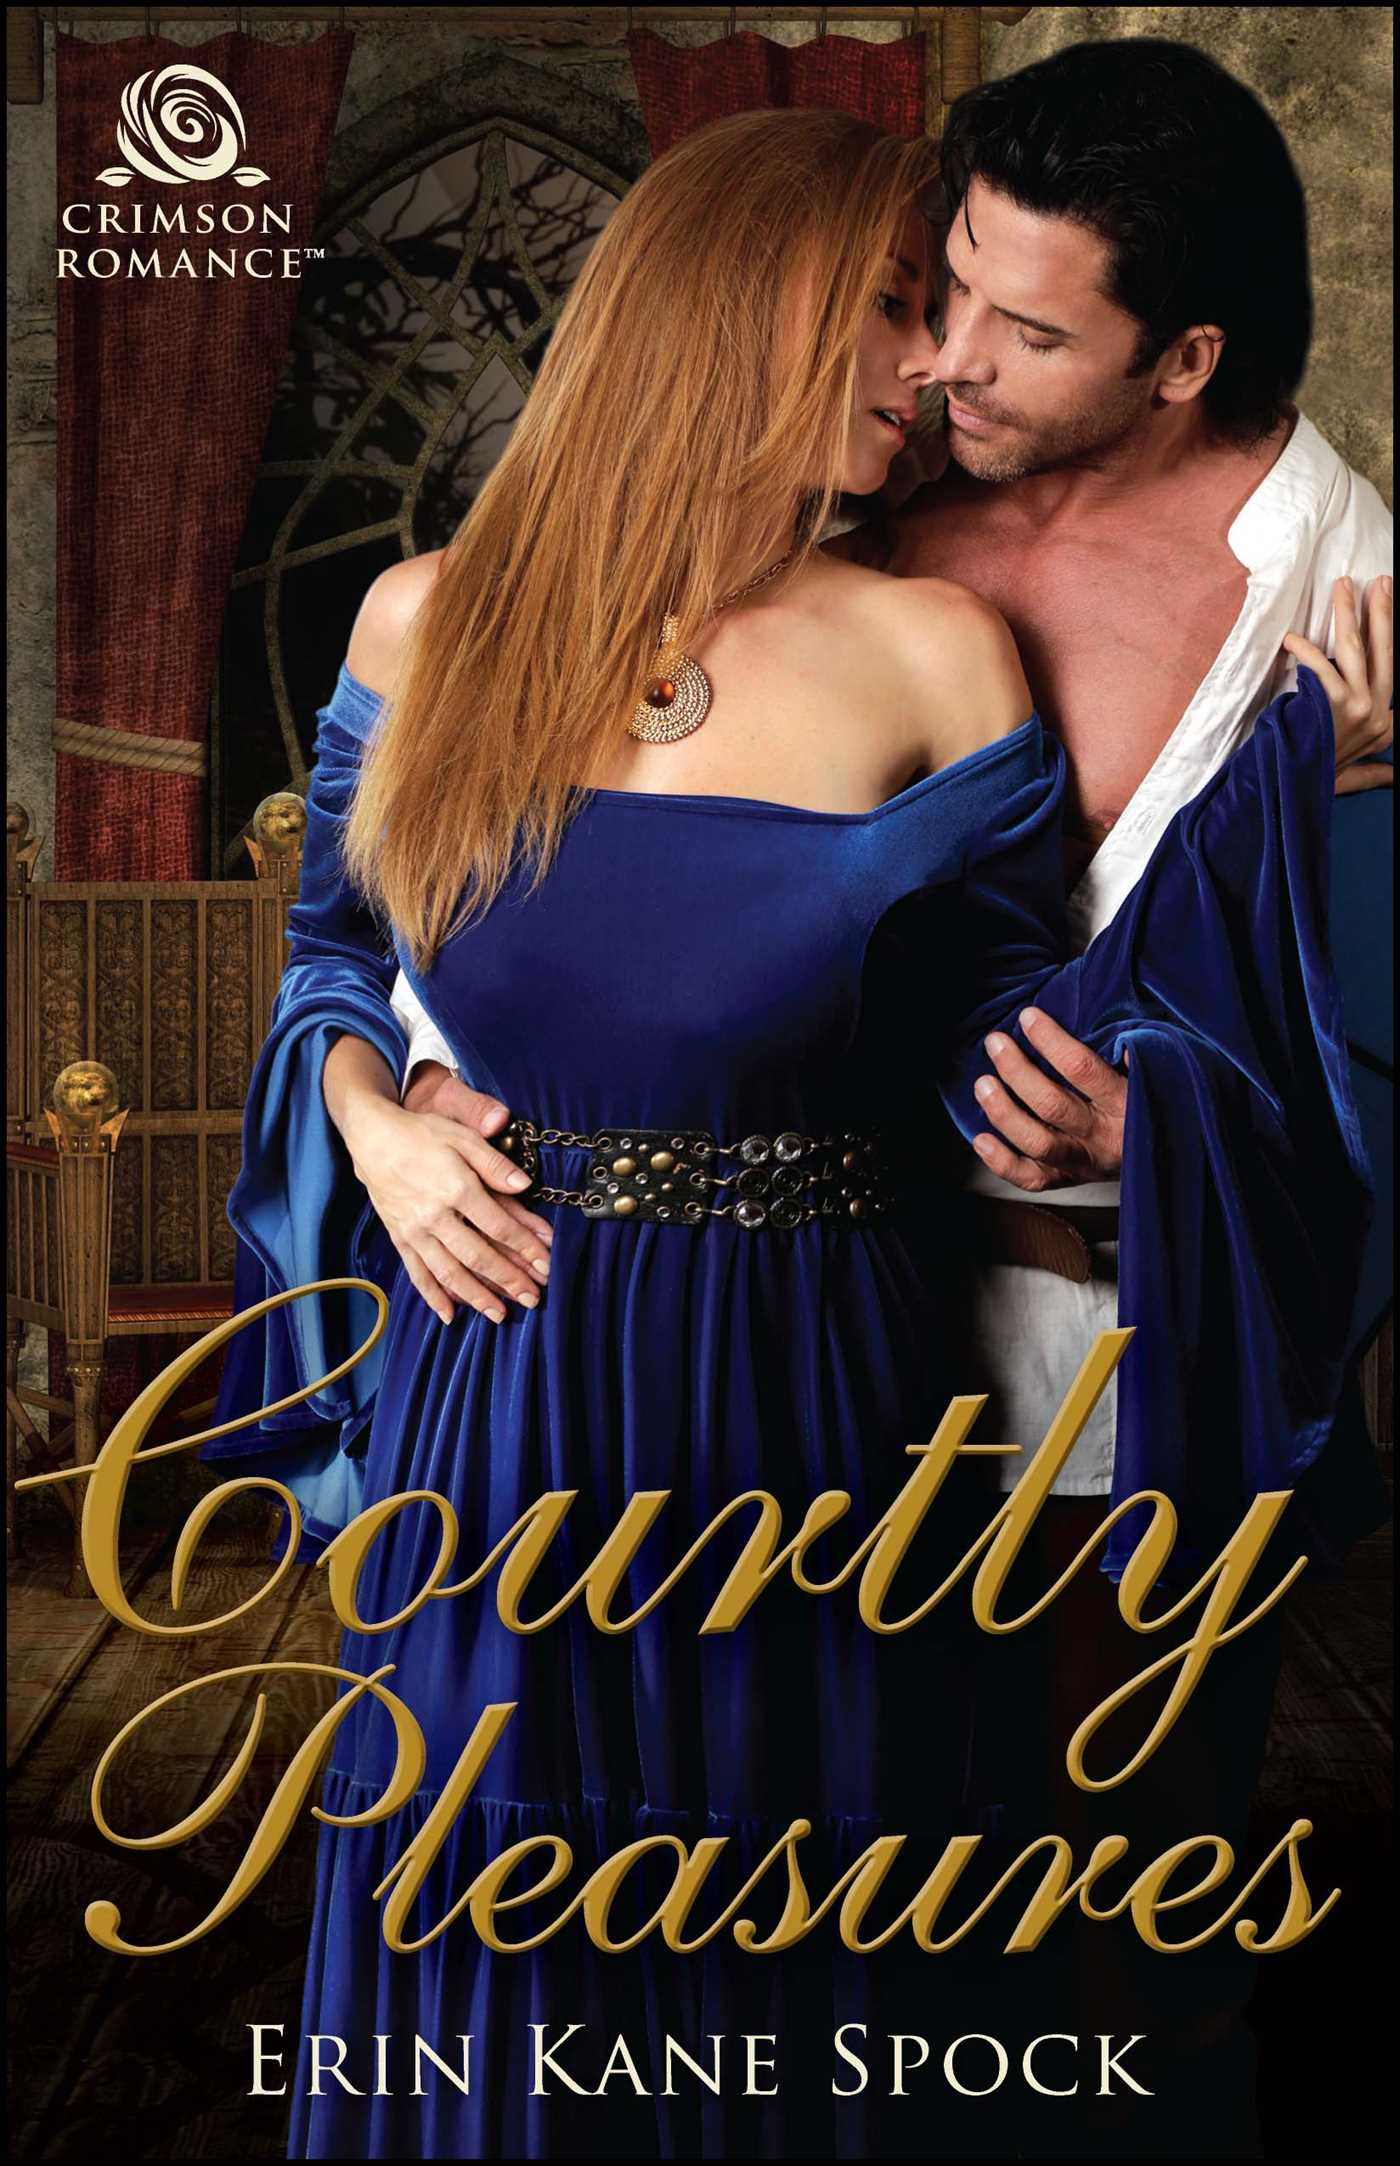 Courtly pleasures 9781507207475 hr